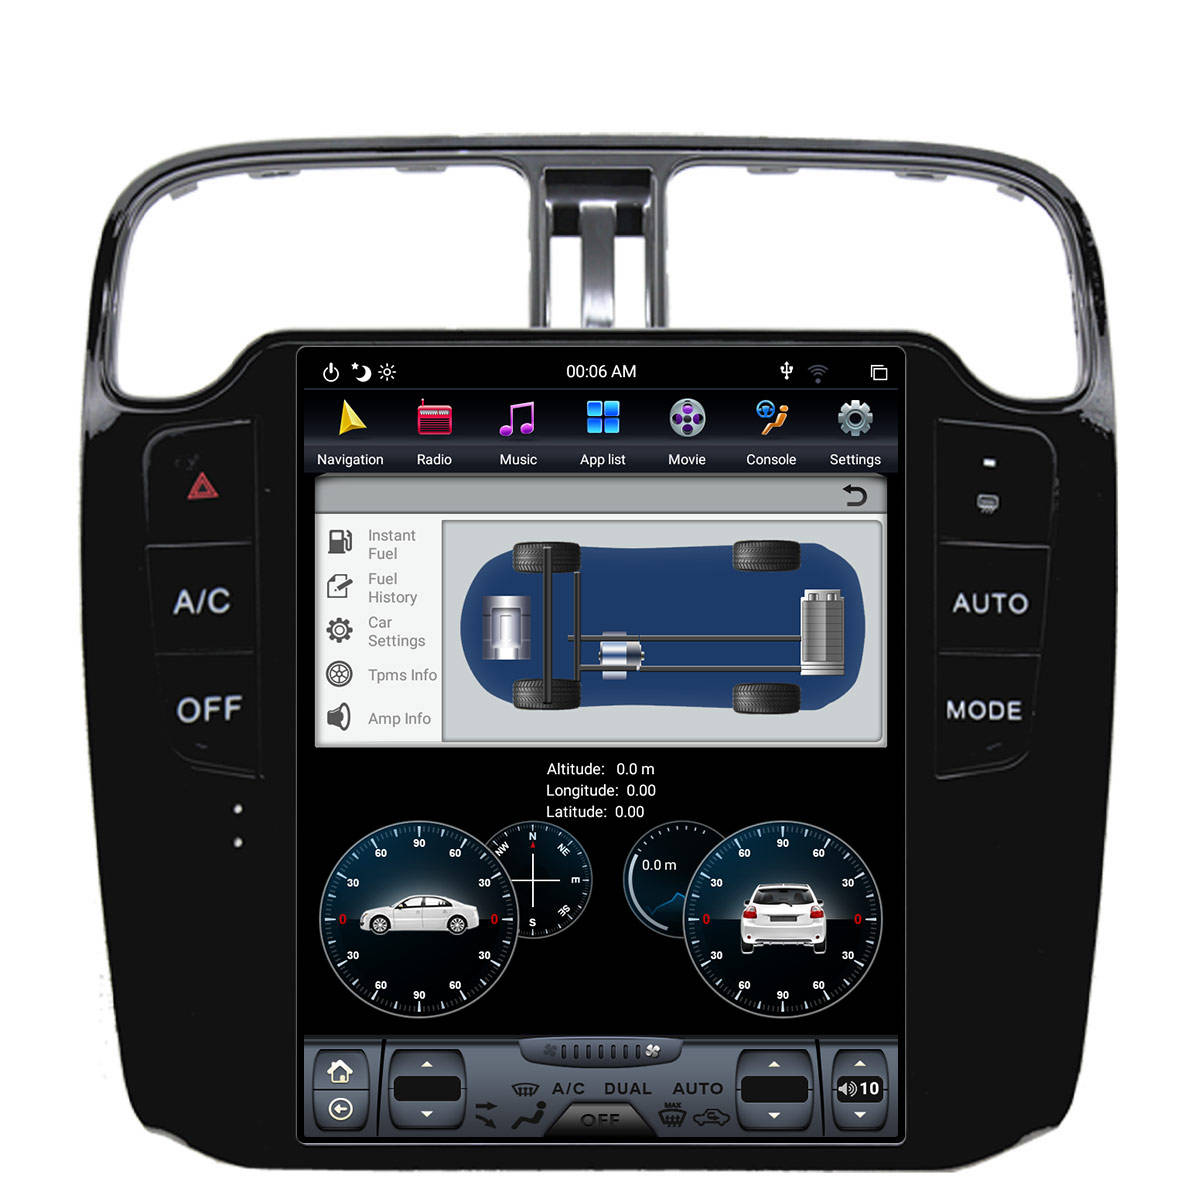 Aotsr 4 + 64G Android 9,0 6Core <span class=keywords><strong>Auto</strong></span> GPS-Navigation Für Volkswagen/<span class=keywords><strong>VW</strong></span> Polo 2012-2019 stereo Kopf Einheit Multimedia Player <span class=keywords><strong>Auto</strong></span> <span class=keywords><strong>Radio</strong></span>